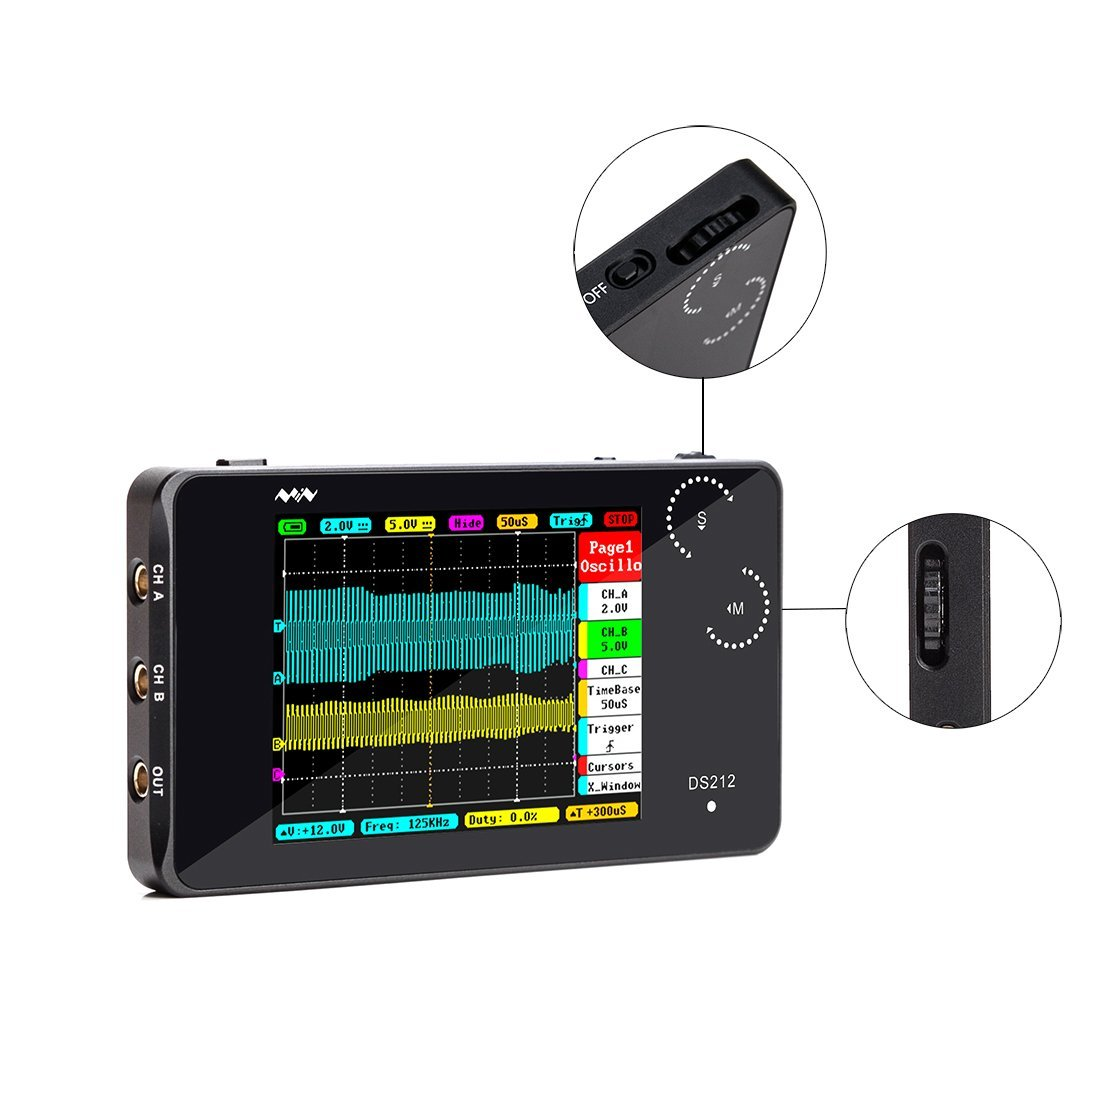 NEW-Mini ARM DSO212 DS212 Portable Digital Storage Oscilloscope Two Channels sample rate 10msa/s цена